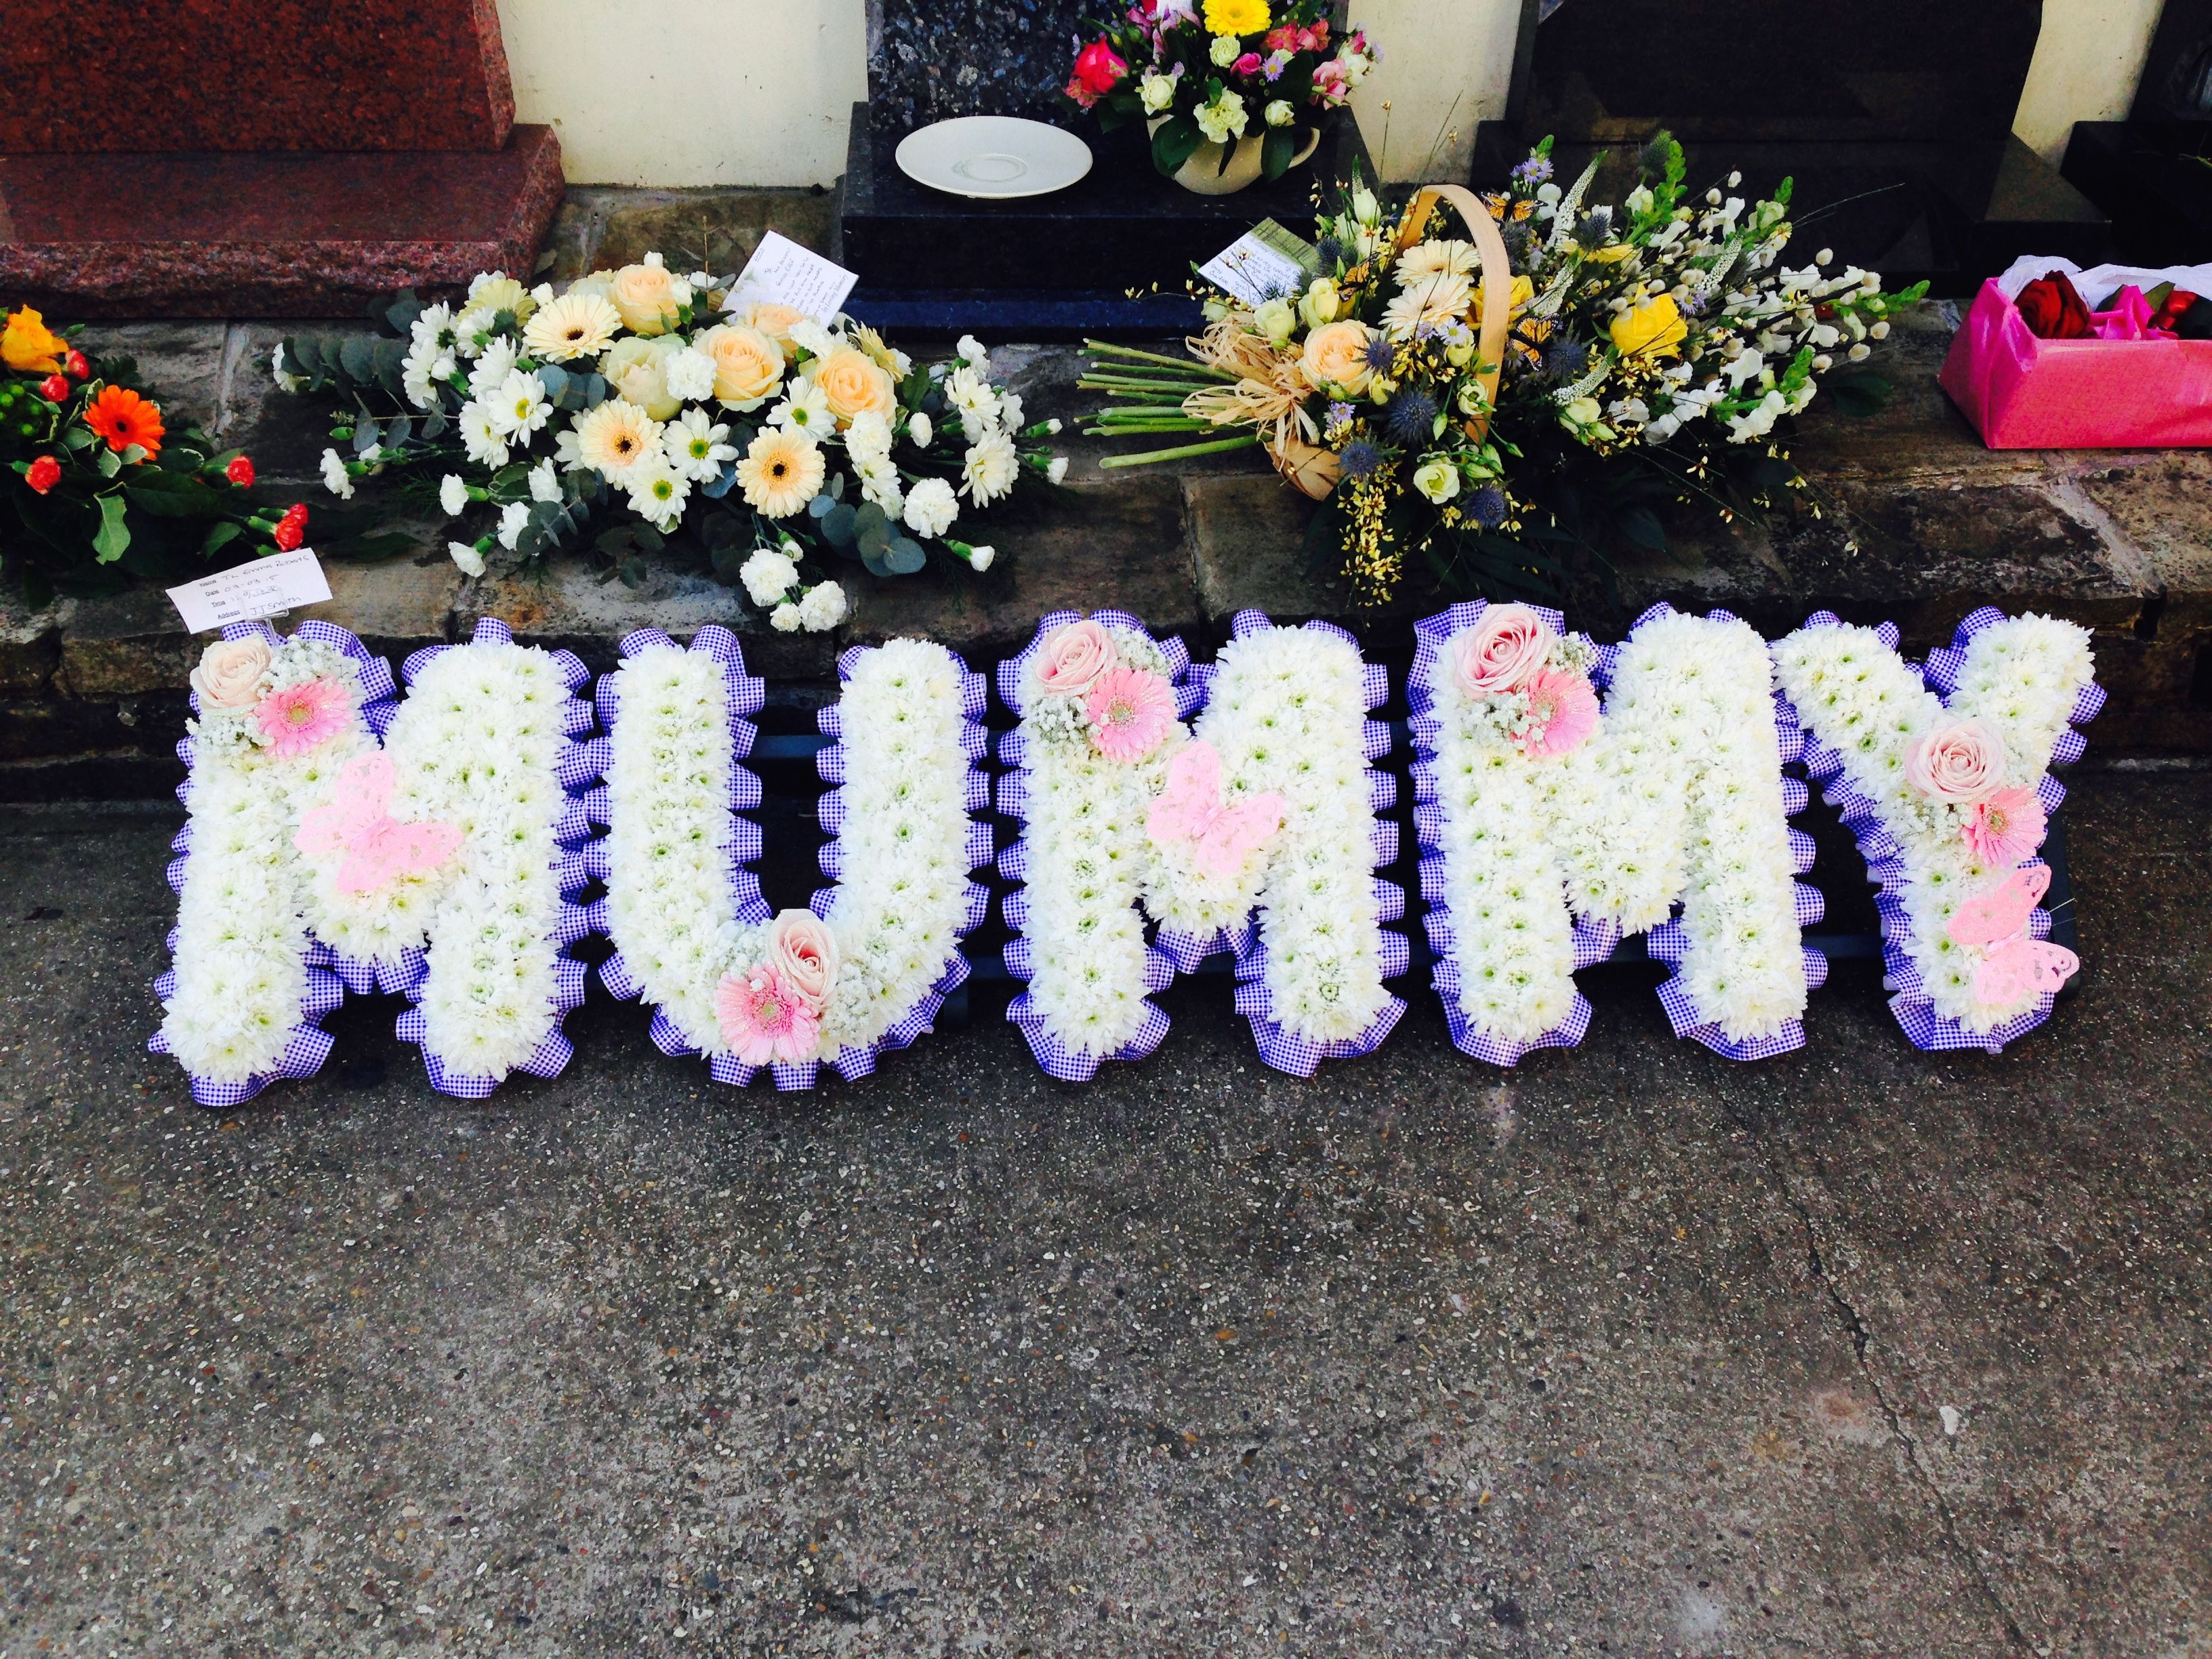 Funeral flowers mummy funeral flower letter tribute www mummy funeral flower letter tribute thefloralartstudio izmirmasajfo Images